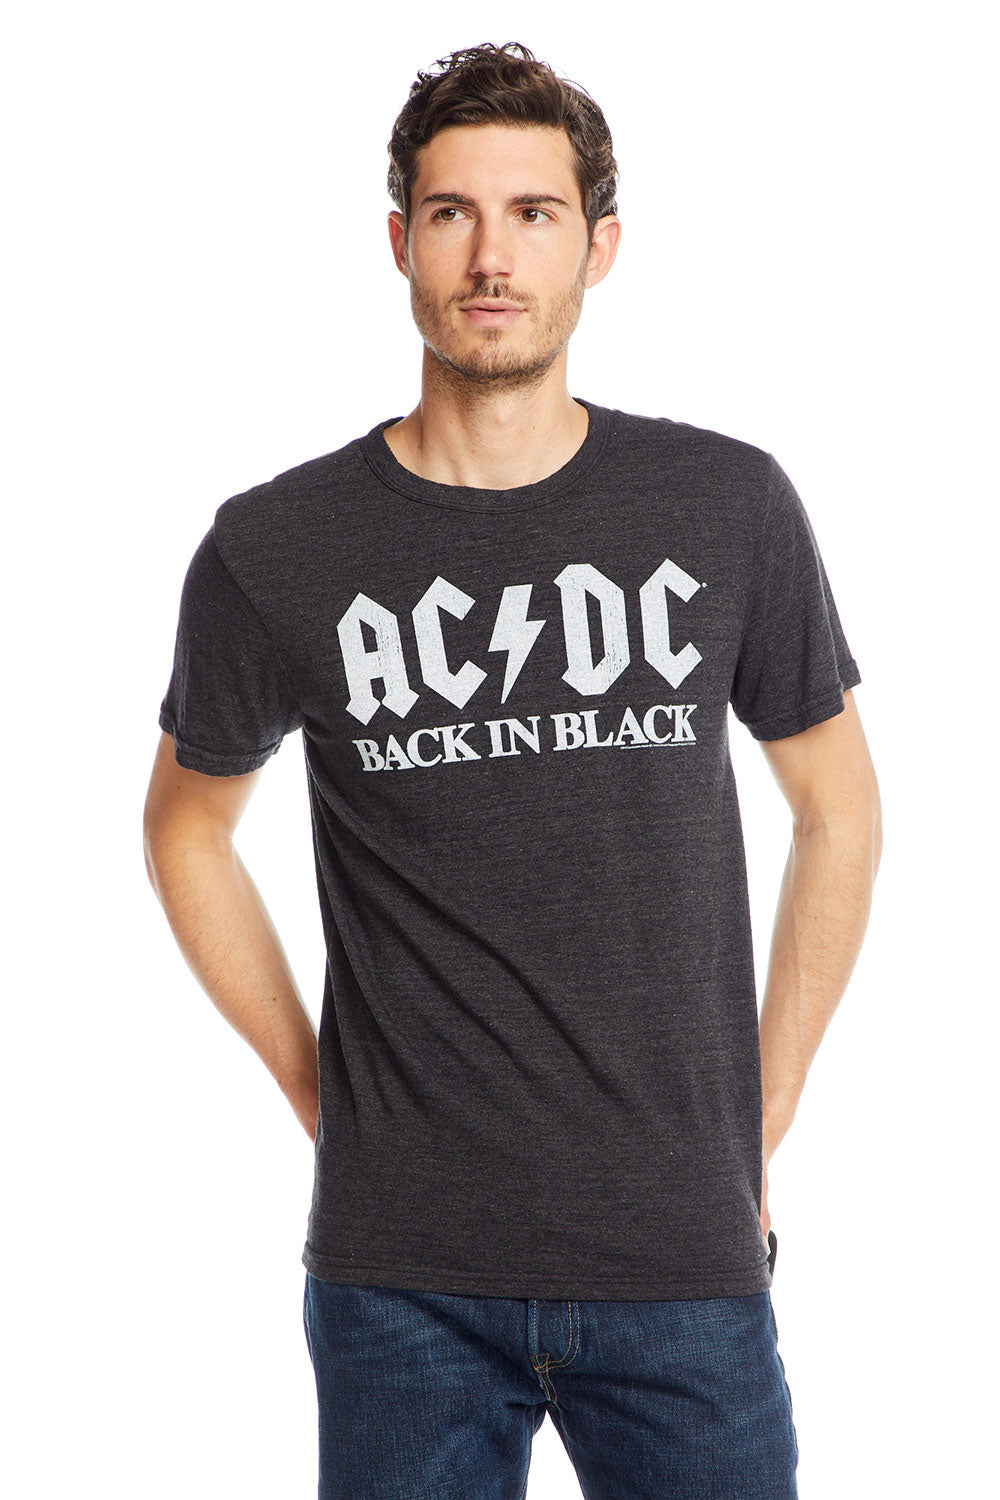 ACDC - Back In Black MENS chaserbrand4.myshopify.com